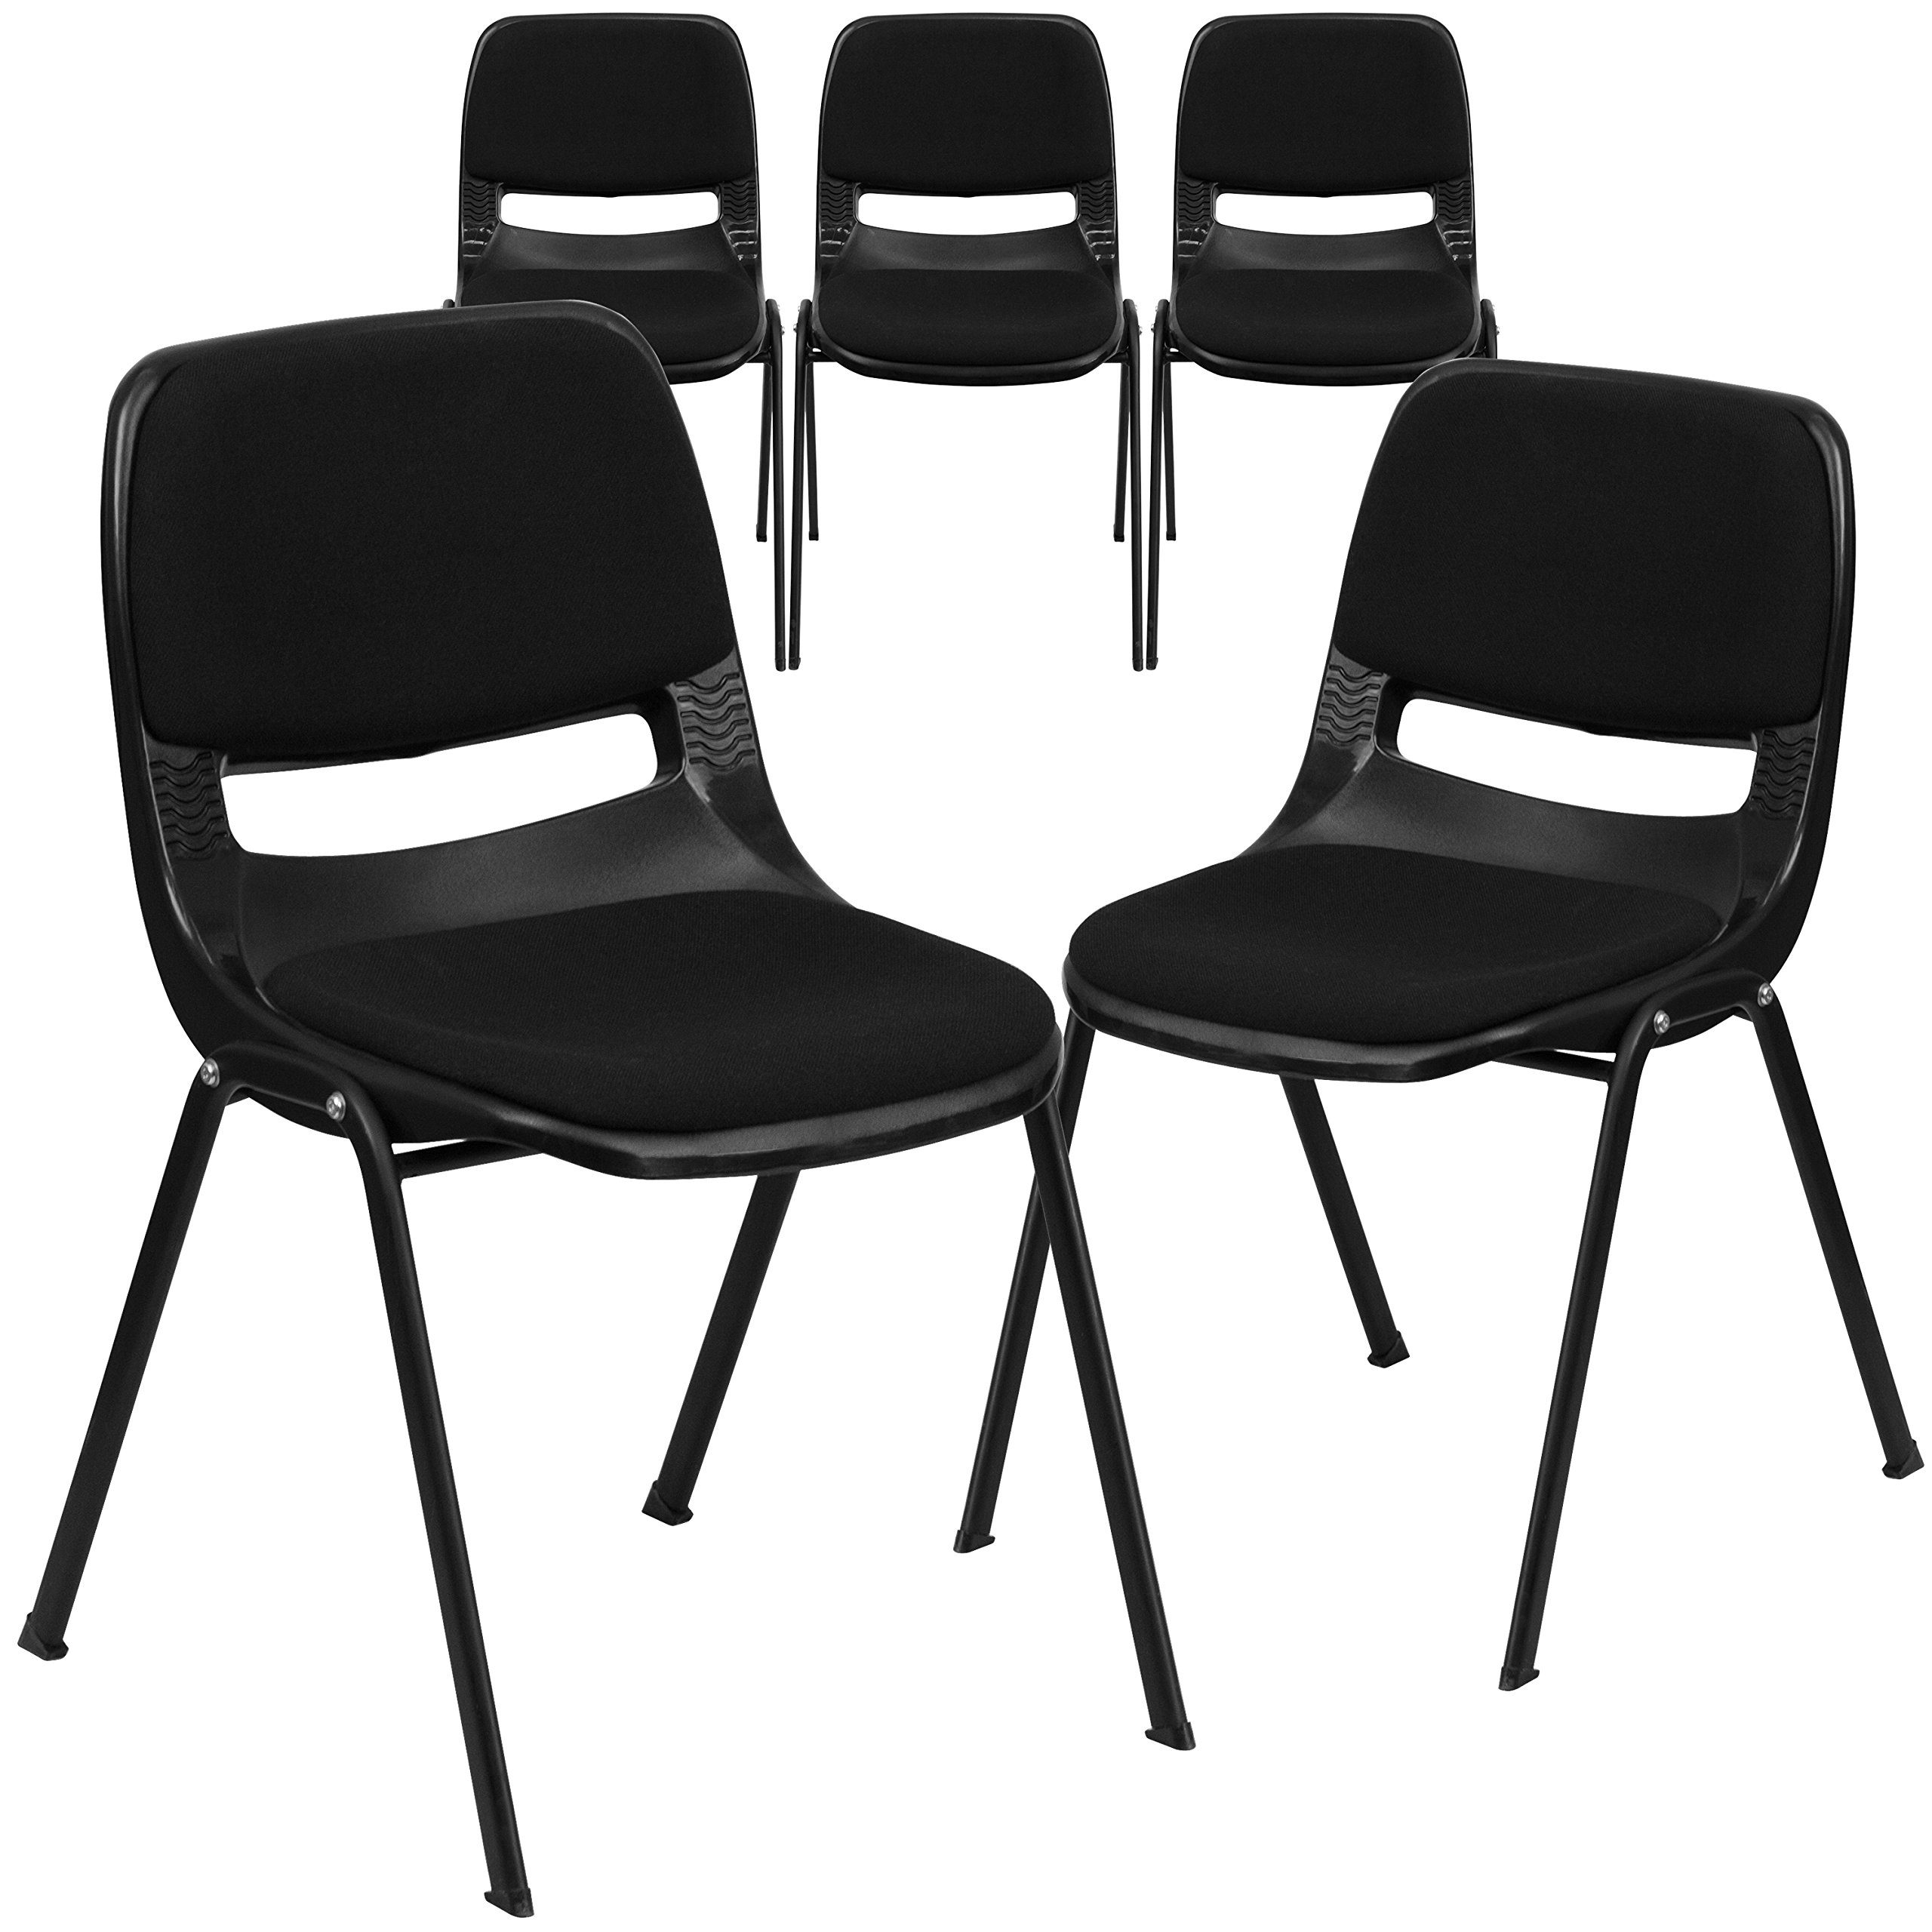 Flash Furniture 5 Pk. HERCULES Series 880 lb. Capacity Black Ergonomic Shell Stack Chair with Padded Seat and Back